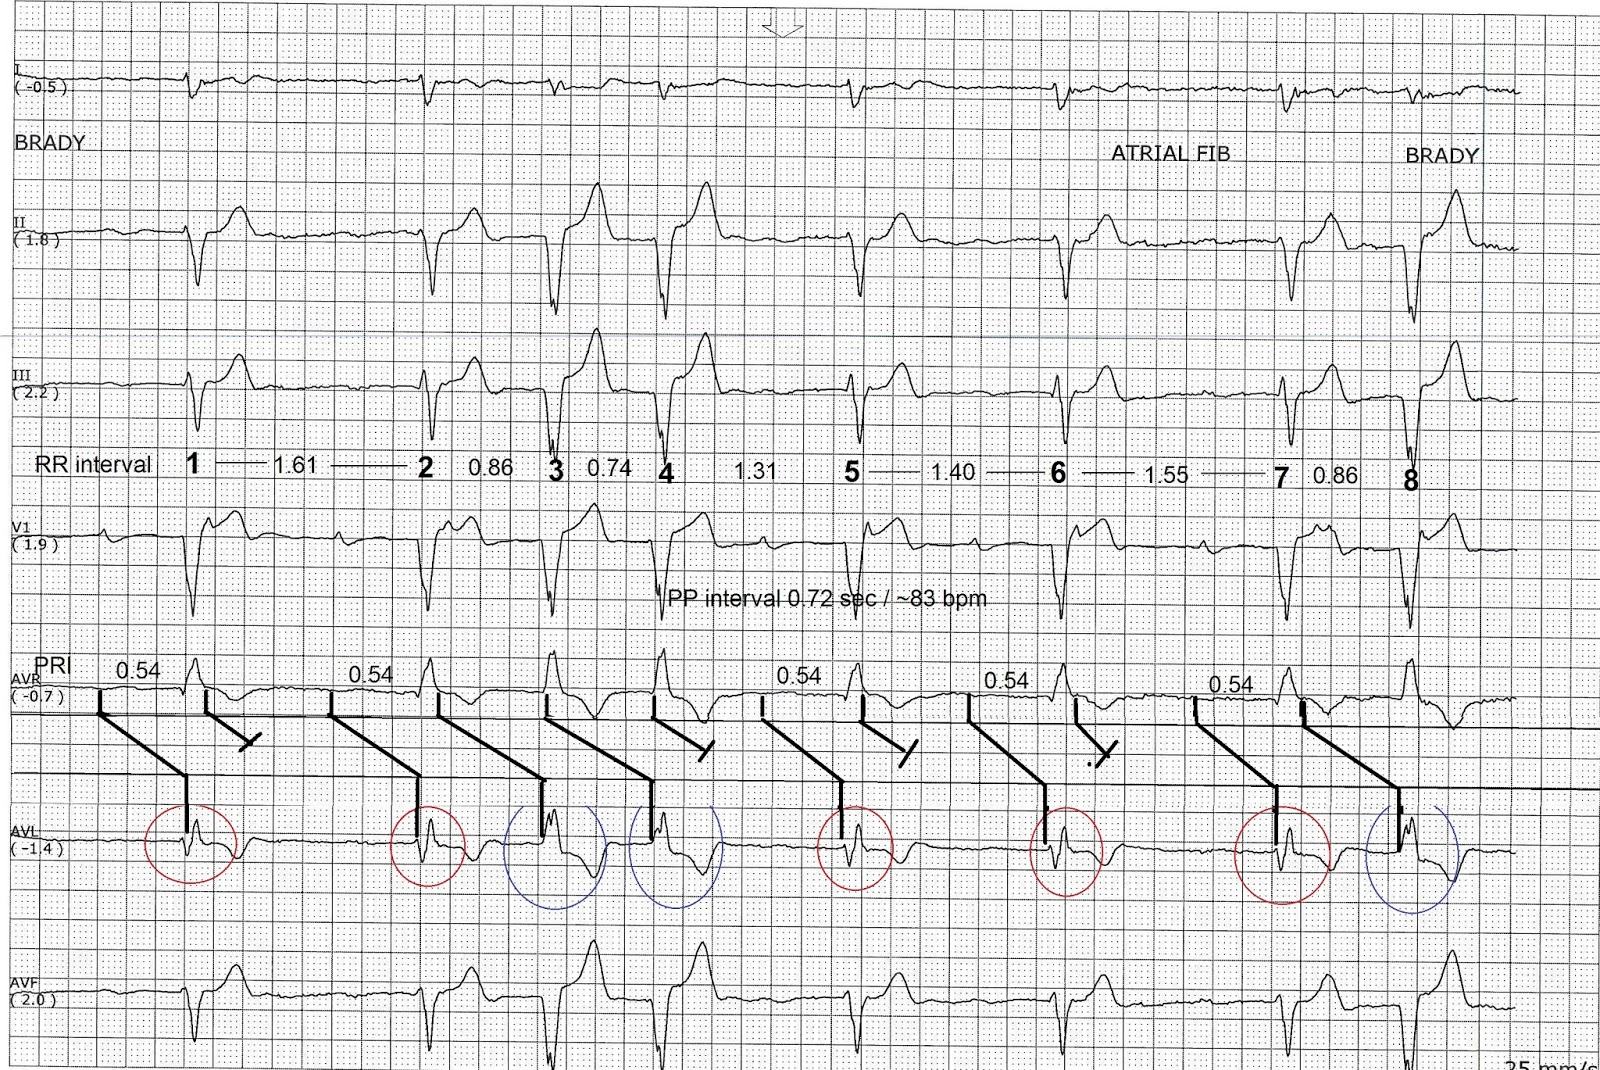 ECG Rhythms: Machine interpretation: atrial fibrillation